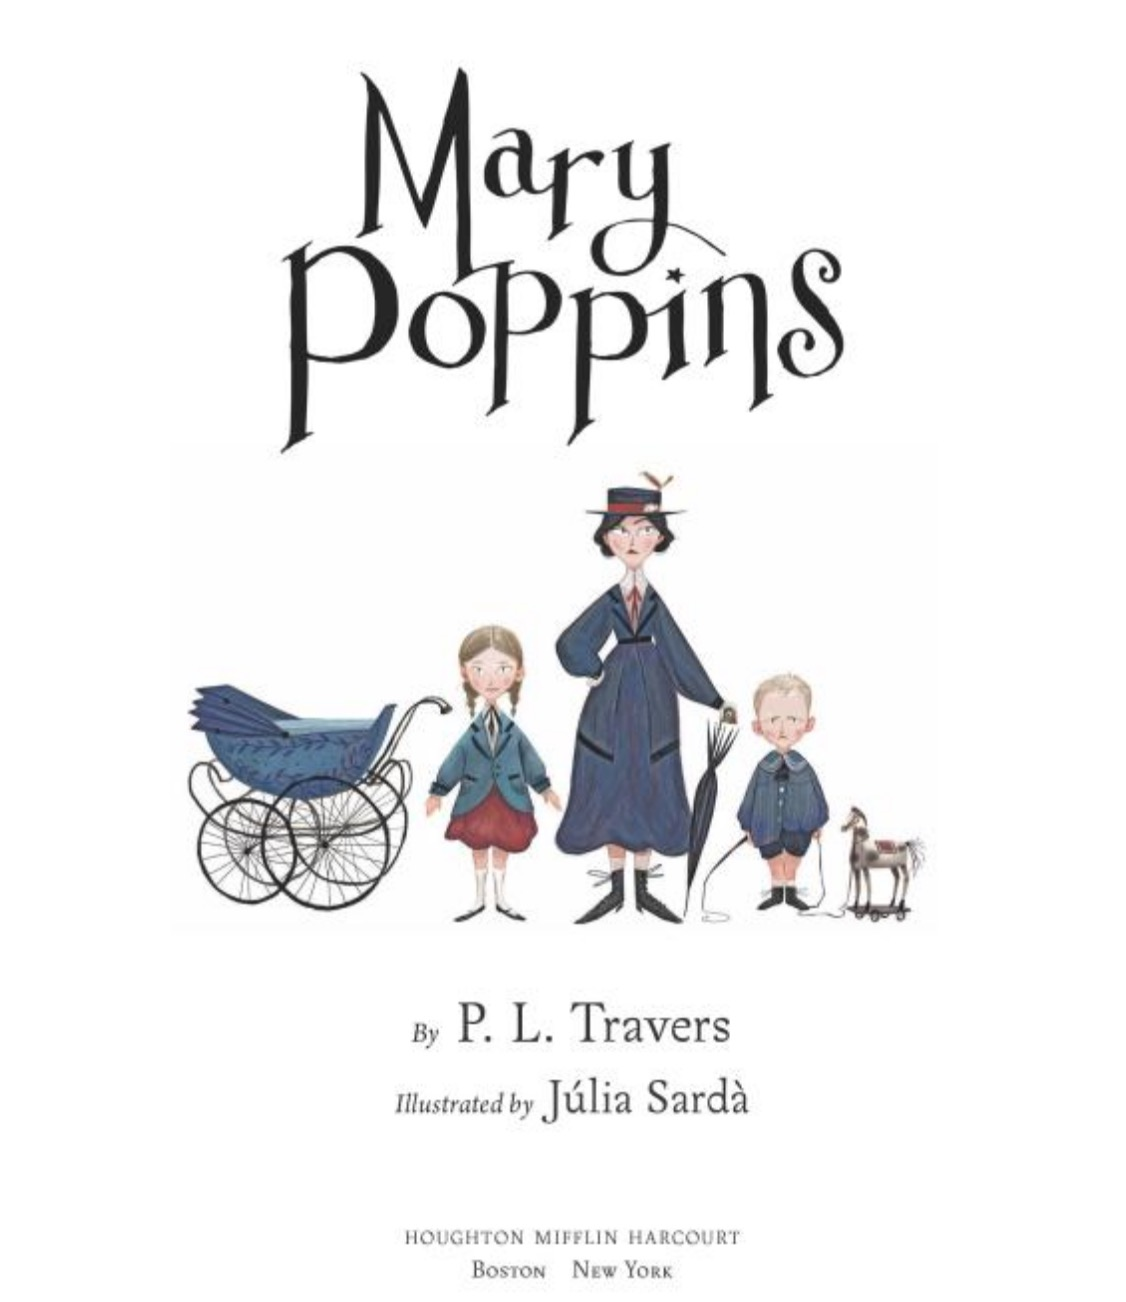 PL Travers Mary Poppins Julia Sarda title page